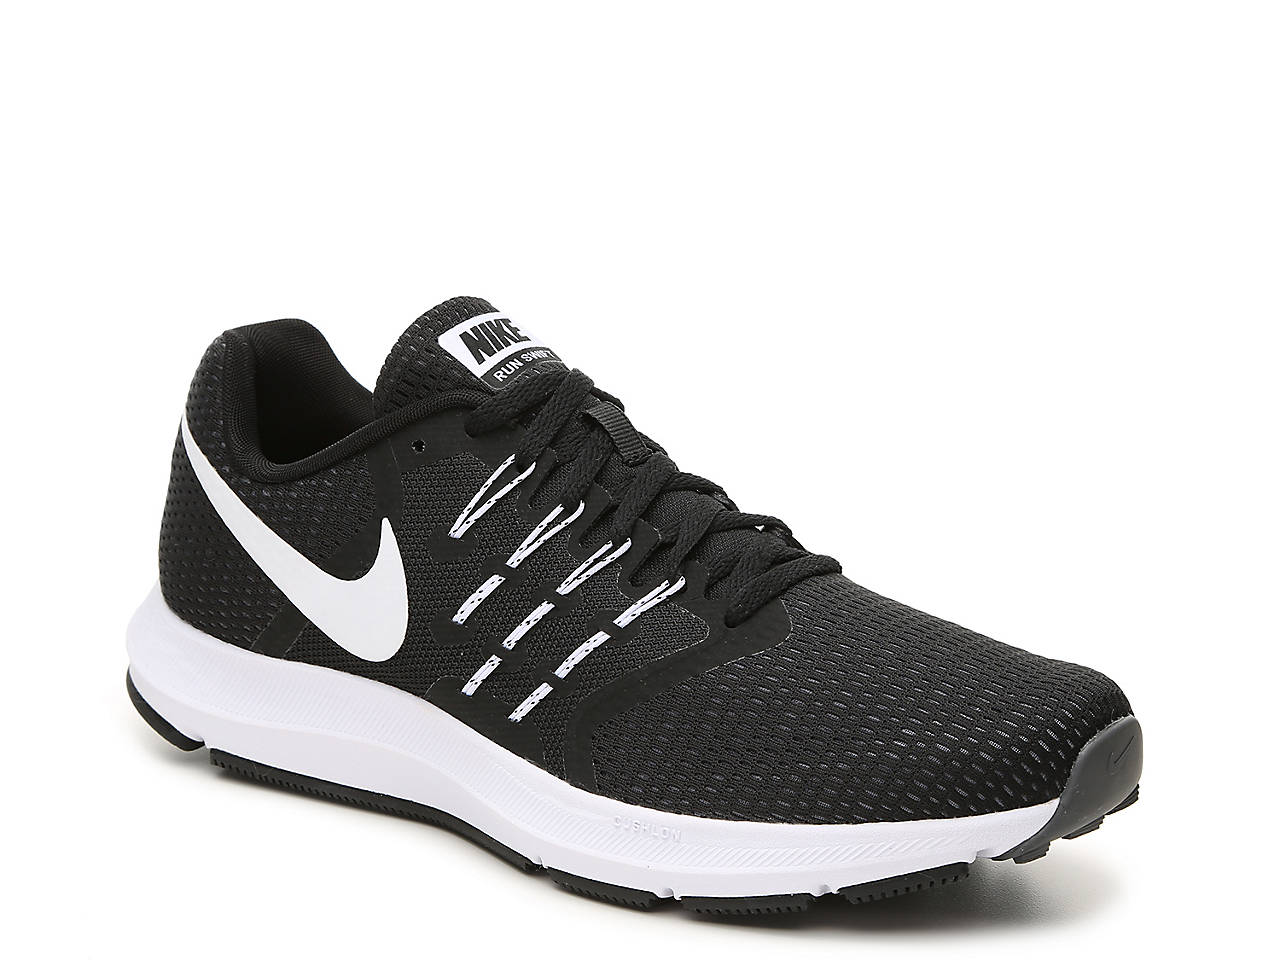 more photos 33478 6390b Nike Run Swift Lightweight Running Shoe - Men s Men s Shoes   DSW